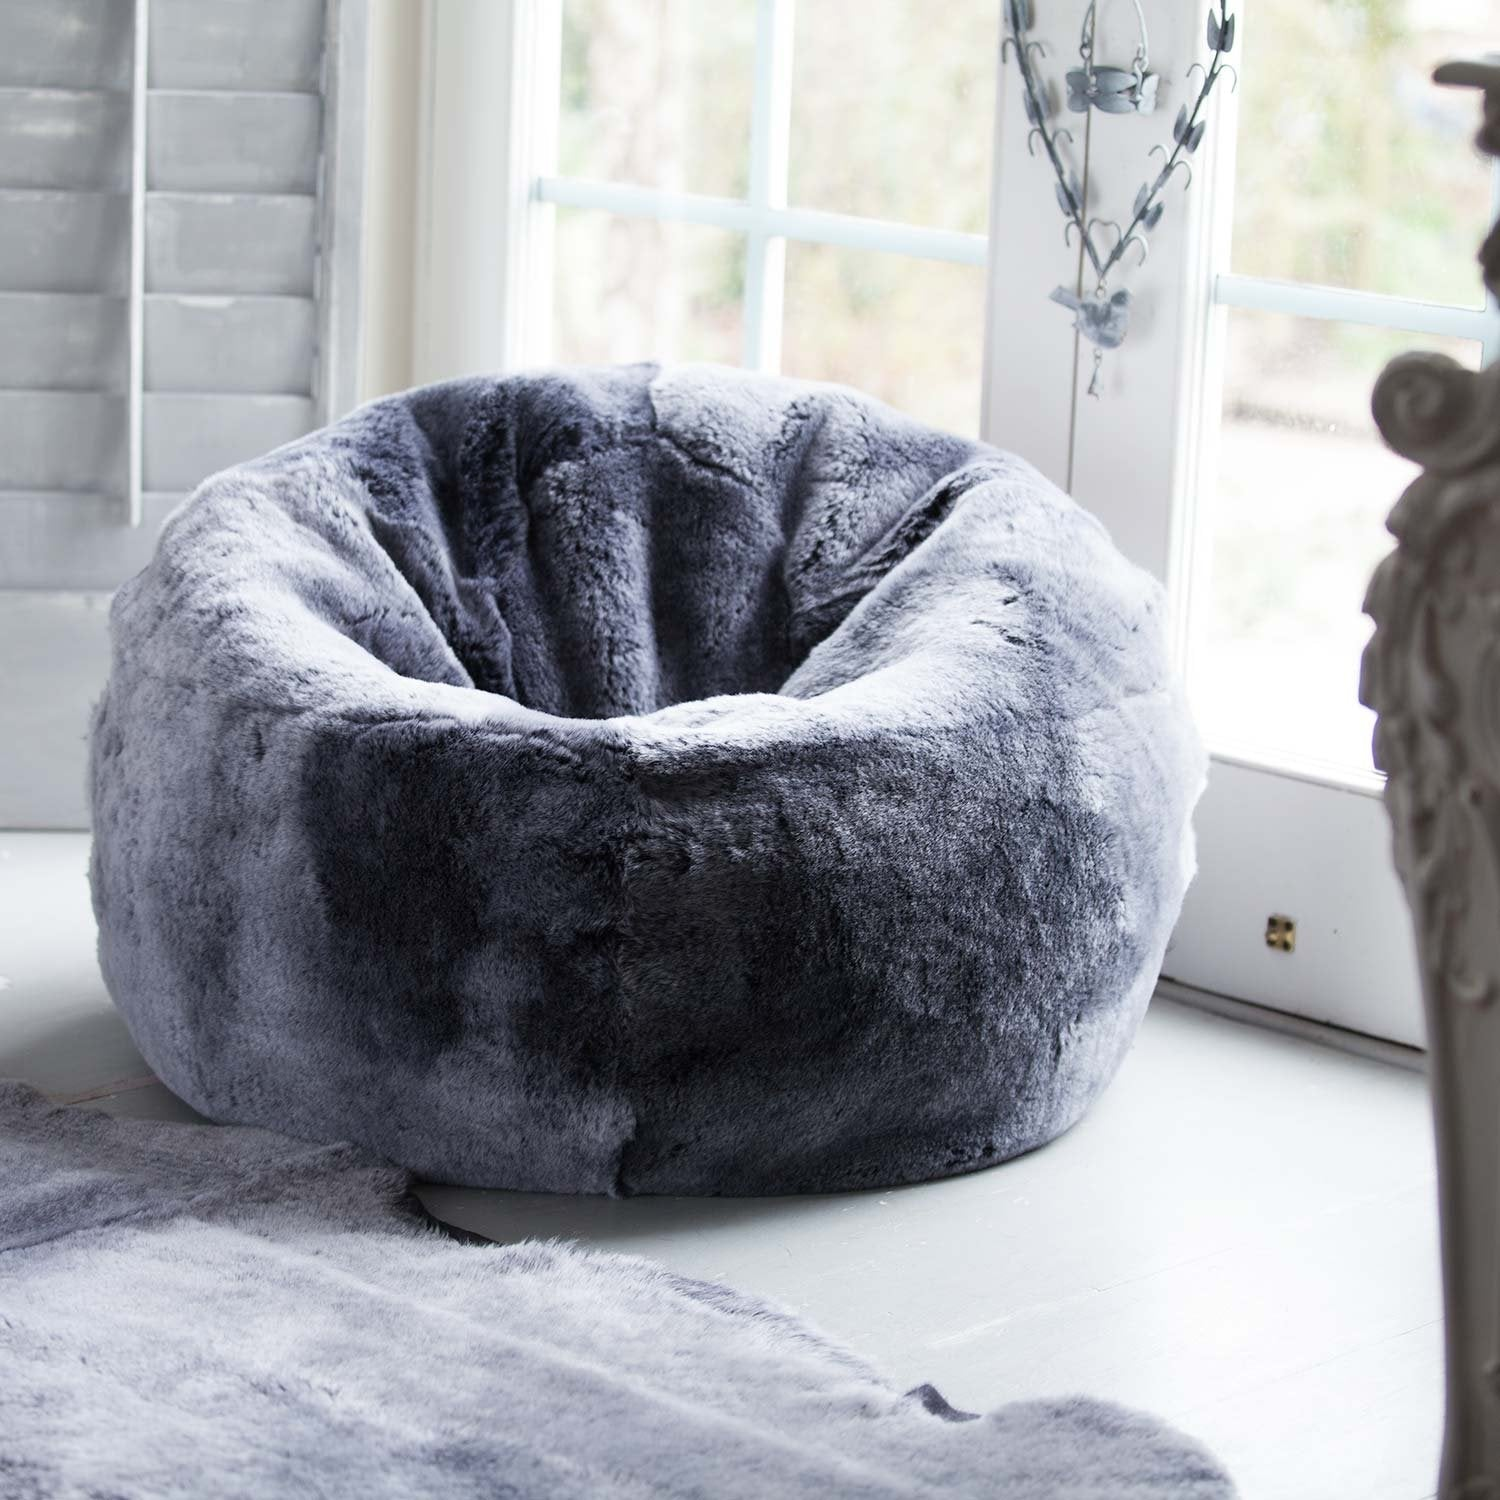 Outstanding Small Sheepskin Beanbag In Graphite Silver Grey The Wool Company Gmtry Best Dining Table And Chair Ideas Images Gmtryco